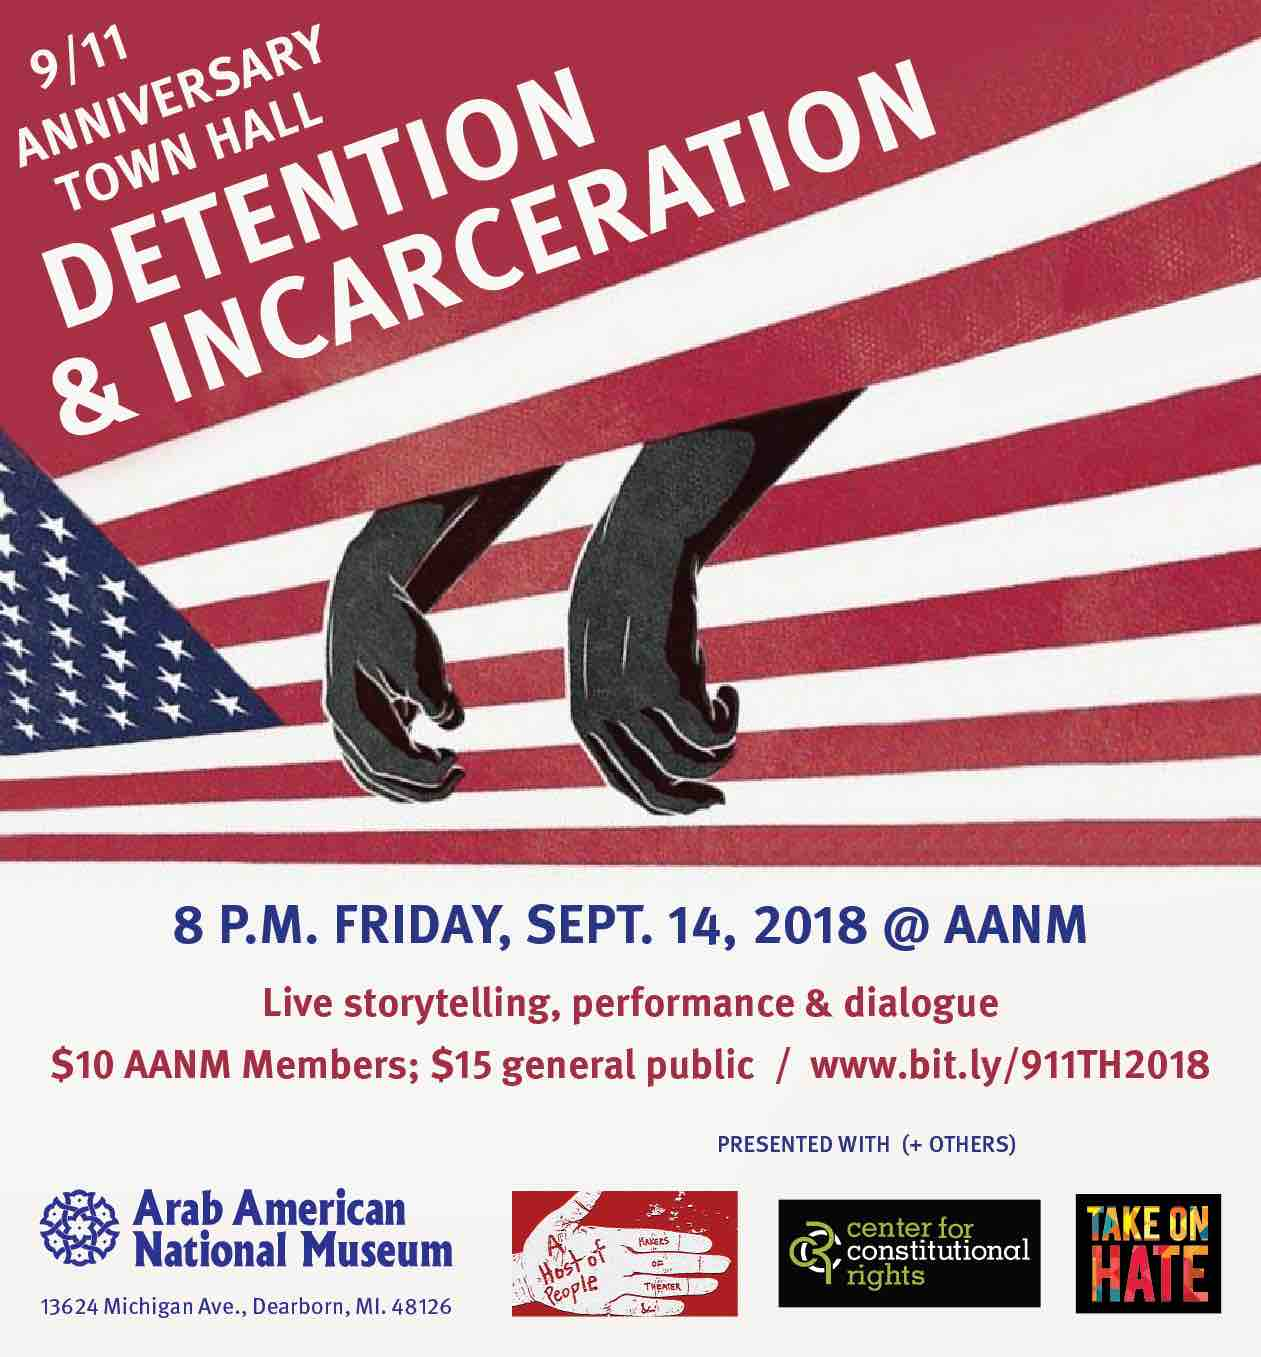 9/11 anniversary town hall: Detention and incarceration